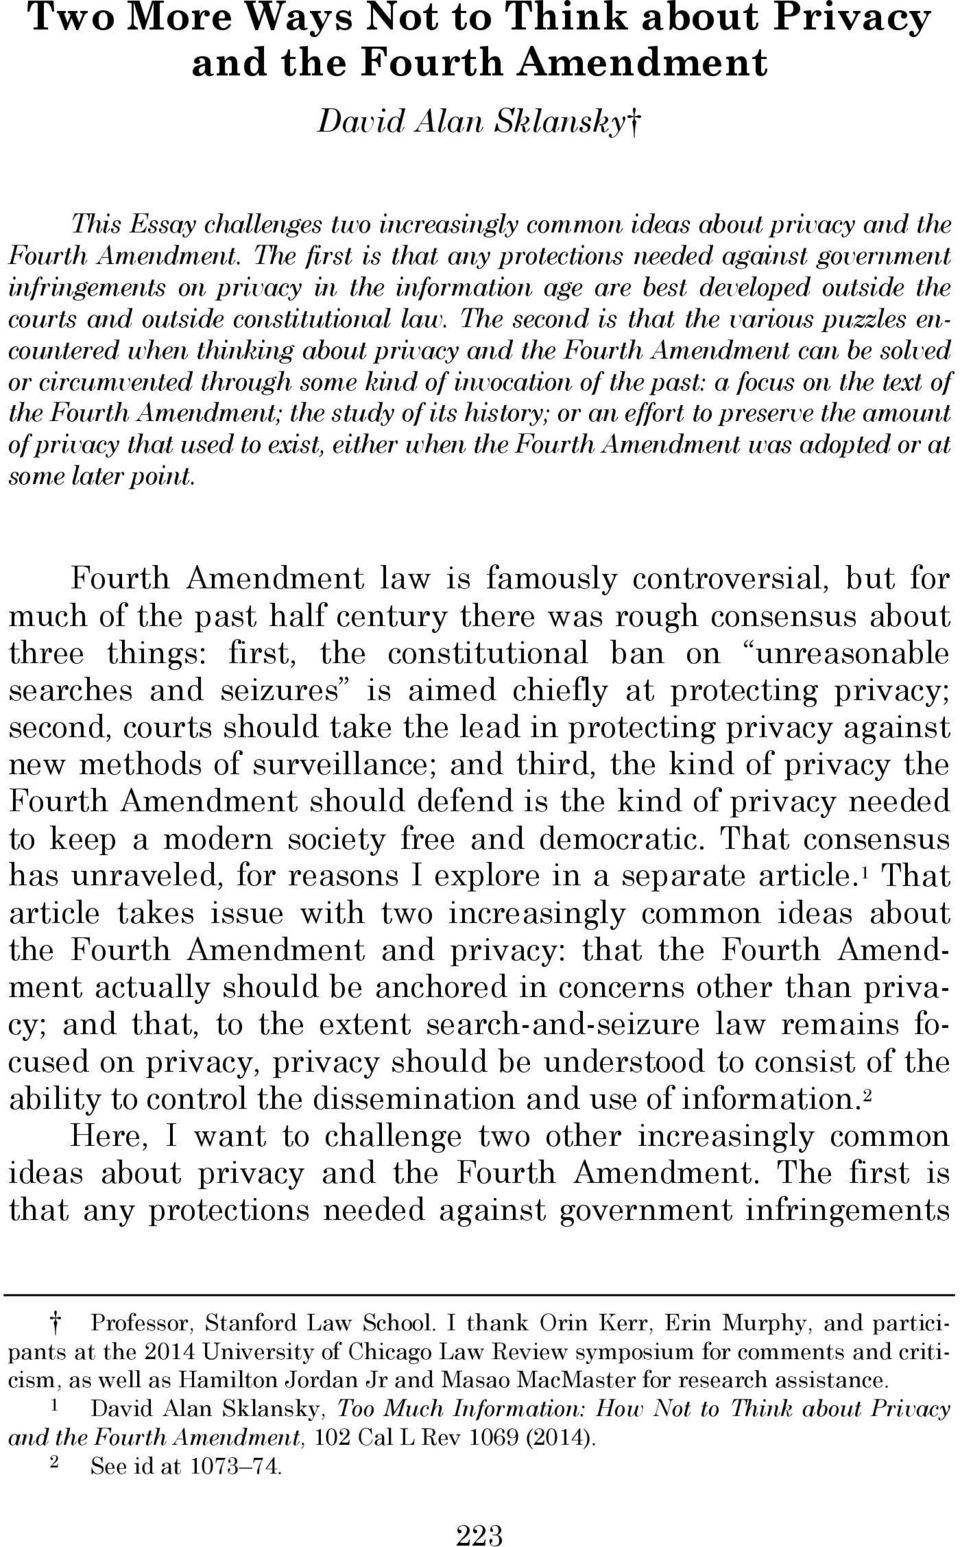 The second is that the various puzzles encountered when thinking about privacy and the Fourth Amendment can be solved or circumvented through some kind of invocation of the past: a focus on the text